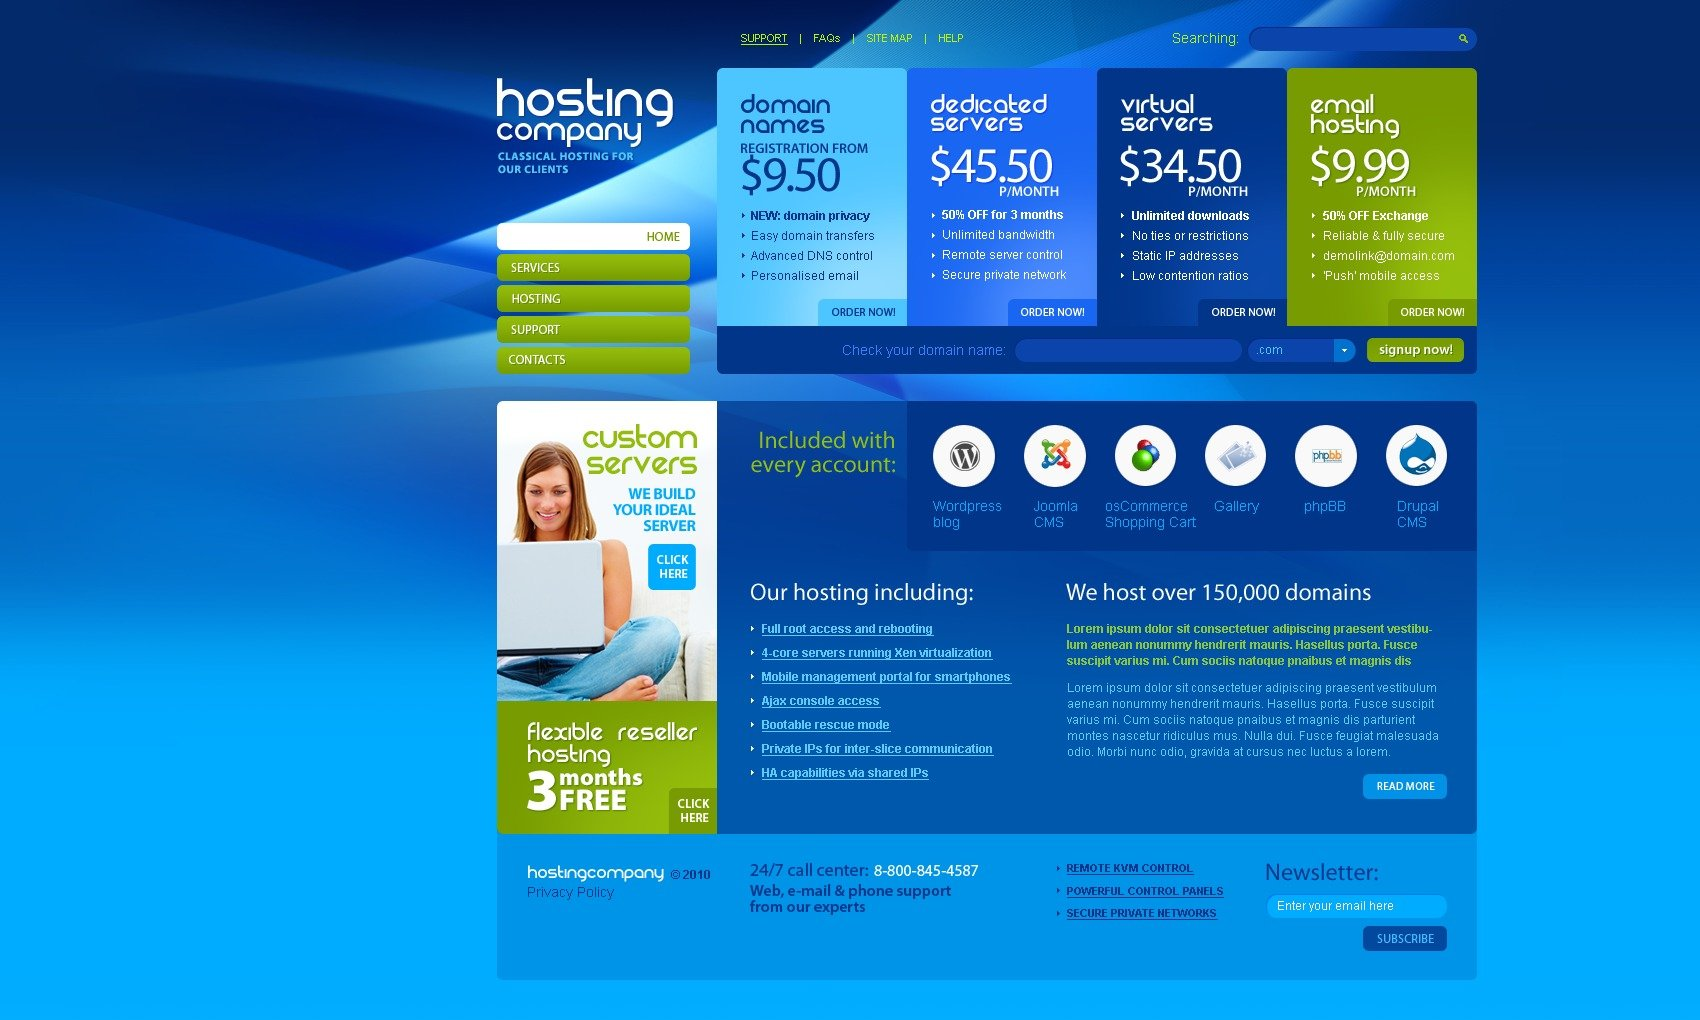 The Hosting Company Solution PSD Design 54196, one of the best PSD templates of its kind (hosting, flash 8, wide), also known as hosting company solution PSD template, domain PSD template, services PSD template, beginner PSD template, plan PSD template, standard PSD template, advanced PSD template, dedicated PSD template, workteam PSD template, tools PSD template, special offer PSD template, server PSD template, monitoring PSD template, management PSD template, account PSD template, activation PSD template, client PSD template, technology solution PSD template, data center provider PSD template, traffic PSD template, internet PSD template, web IT processor PSD template, spa and related with hosting company solution, domain, services, beginner, plan, standard, advanced, dedicated, workteam, tools, special offer, server, monitoring, management, account, activation, client, technology solution, data center provider, traffic, internet, web IT processor, spa, etc.